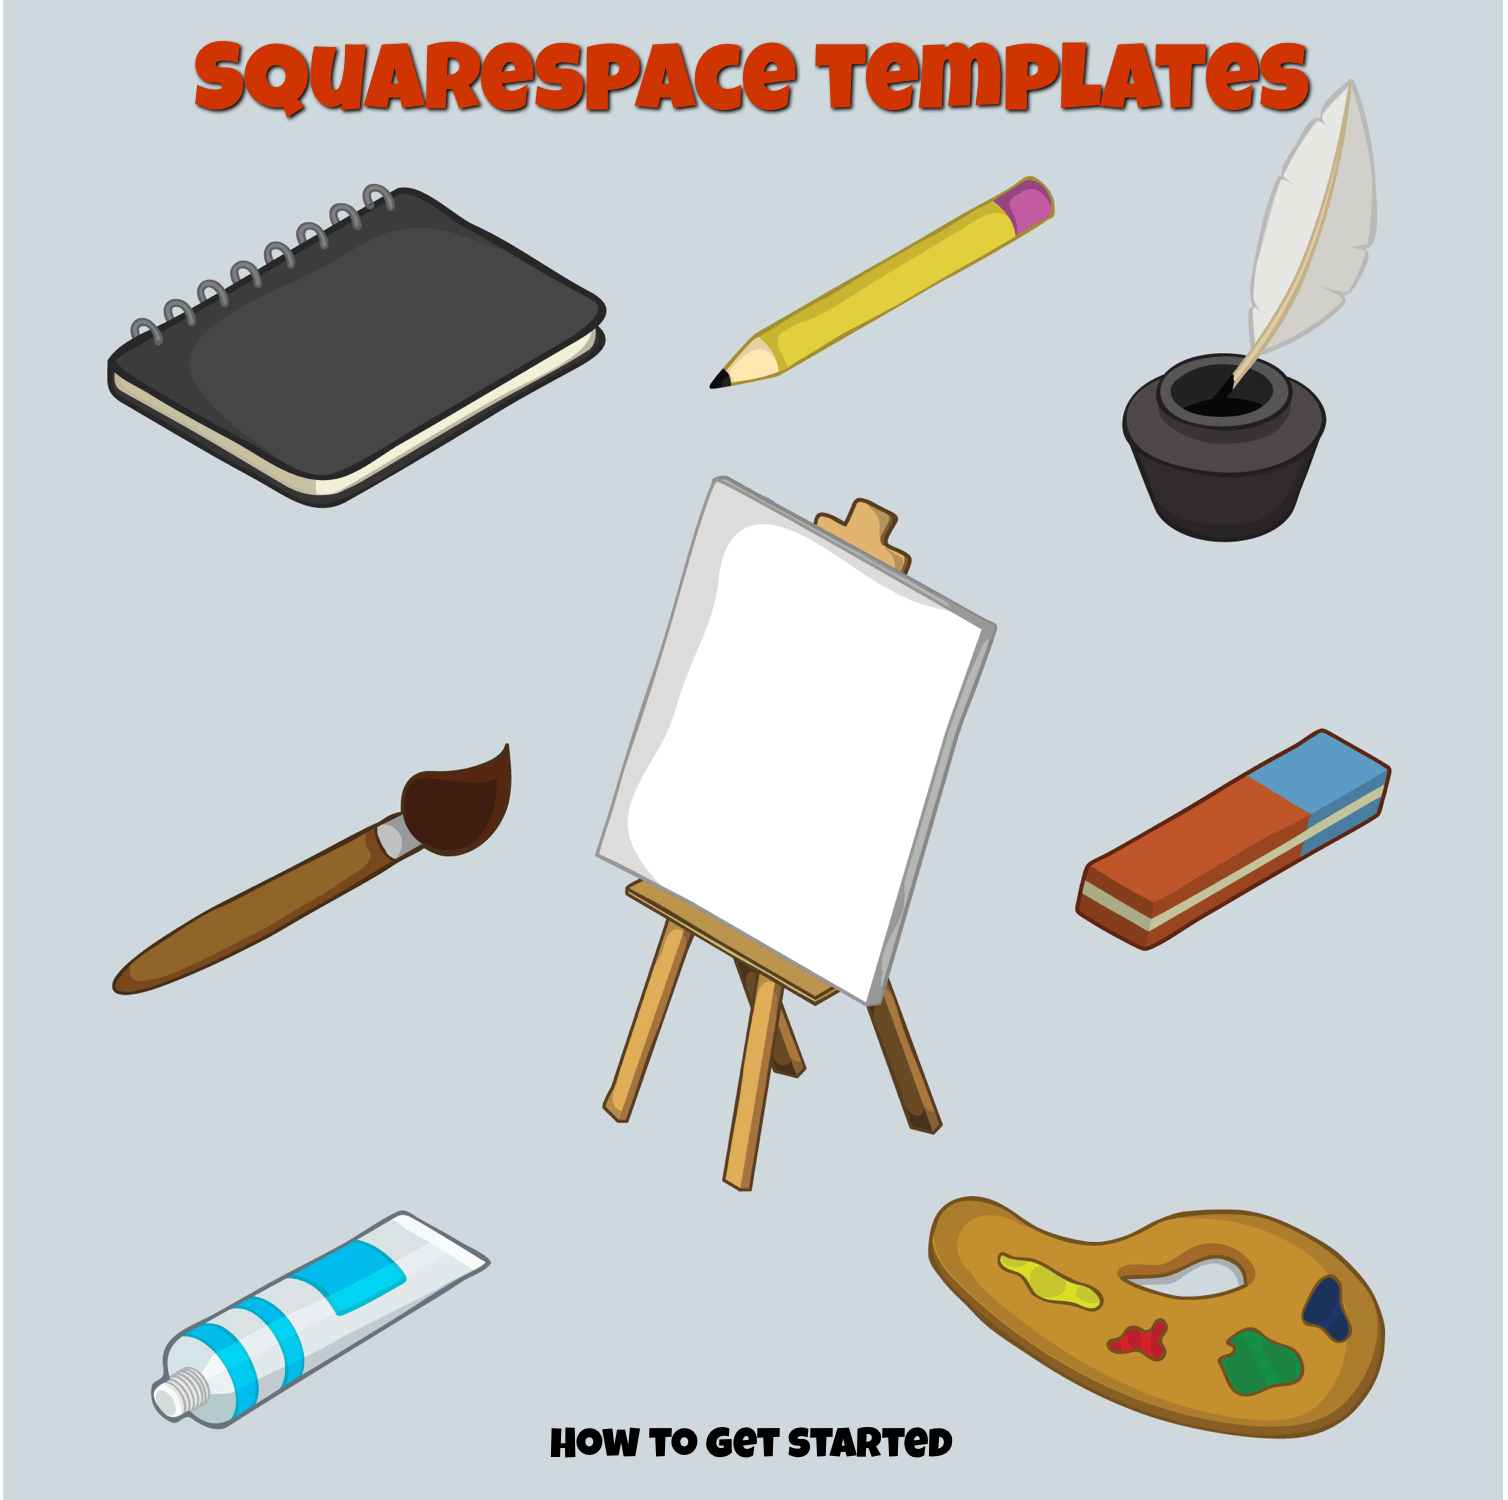 squarespace templates 1